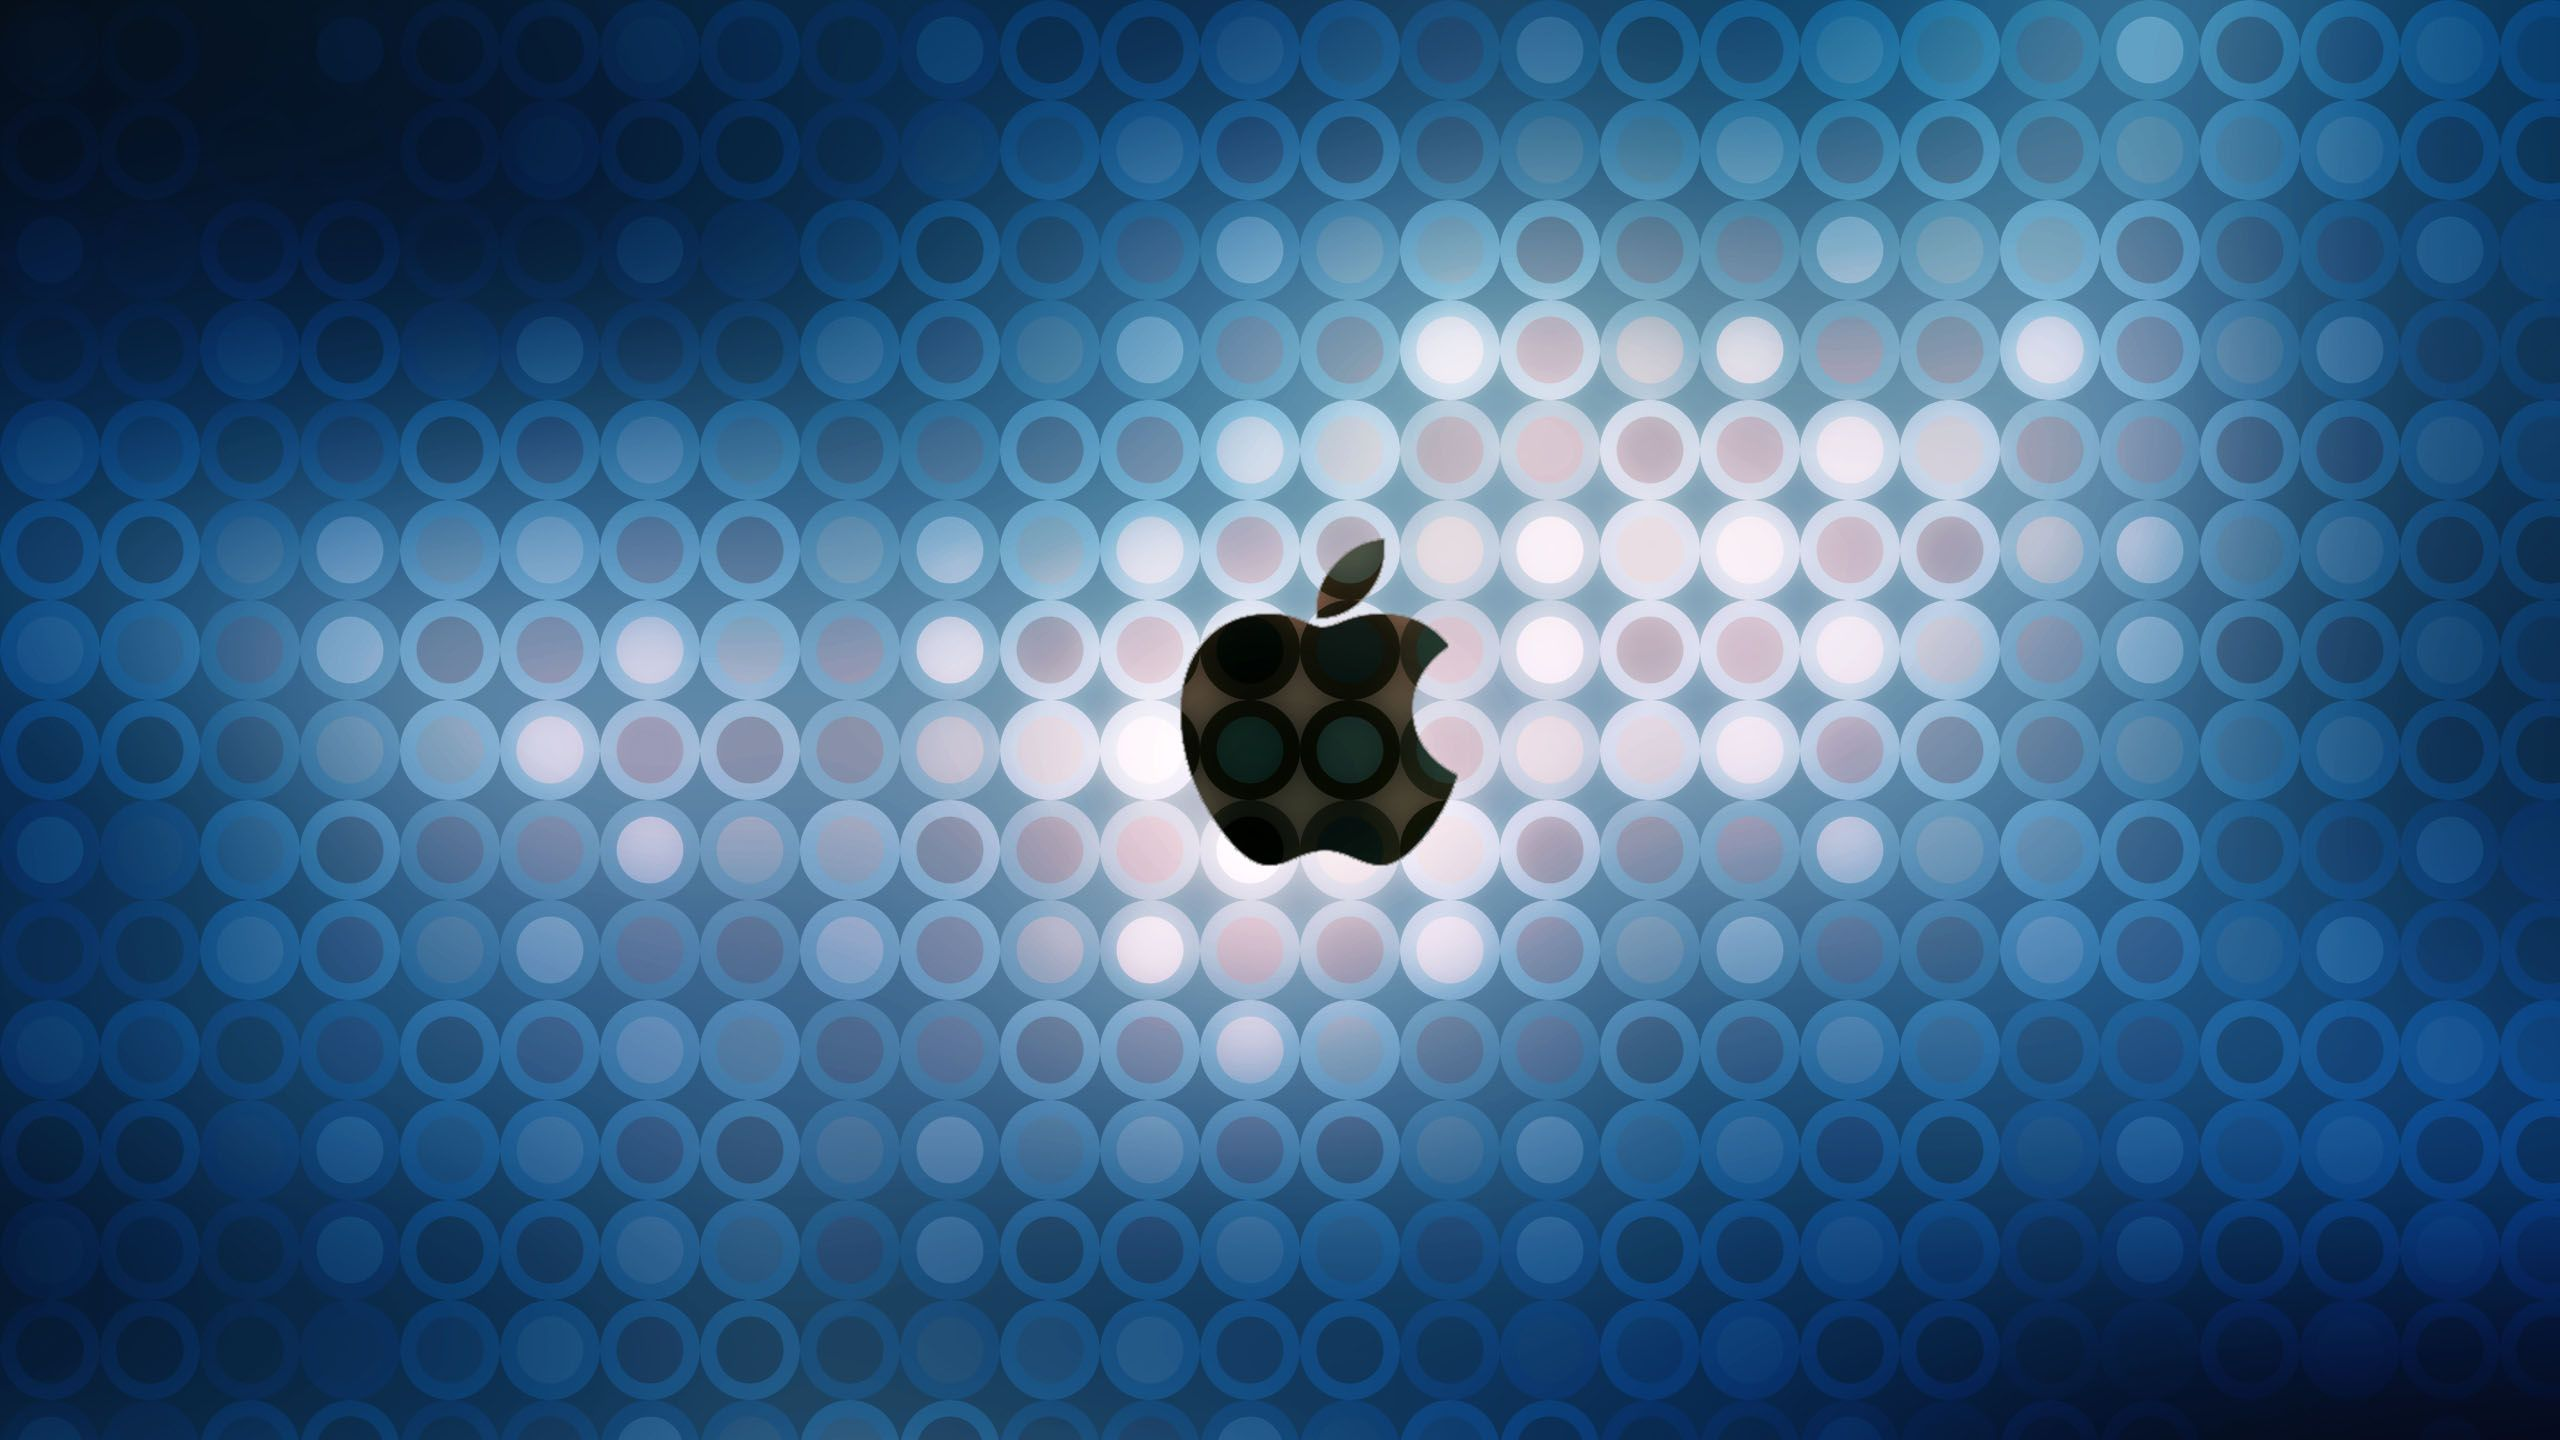 Hd wallpaper electronics - Mac Wallpaper Sell Your Used Electronics At Techpayout We Pay Top Dollar Techpayout